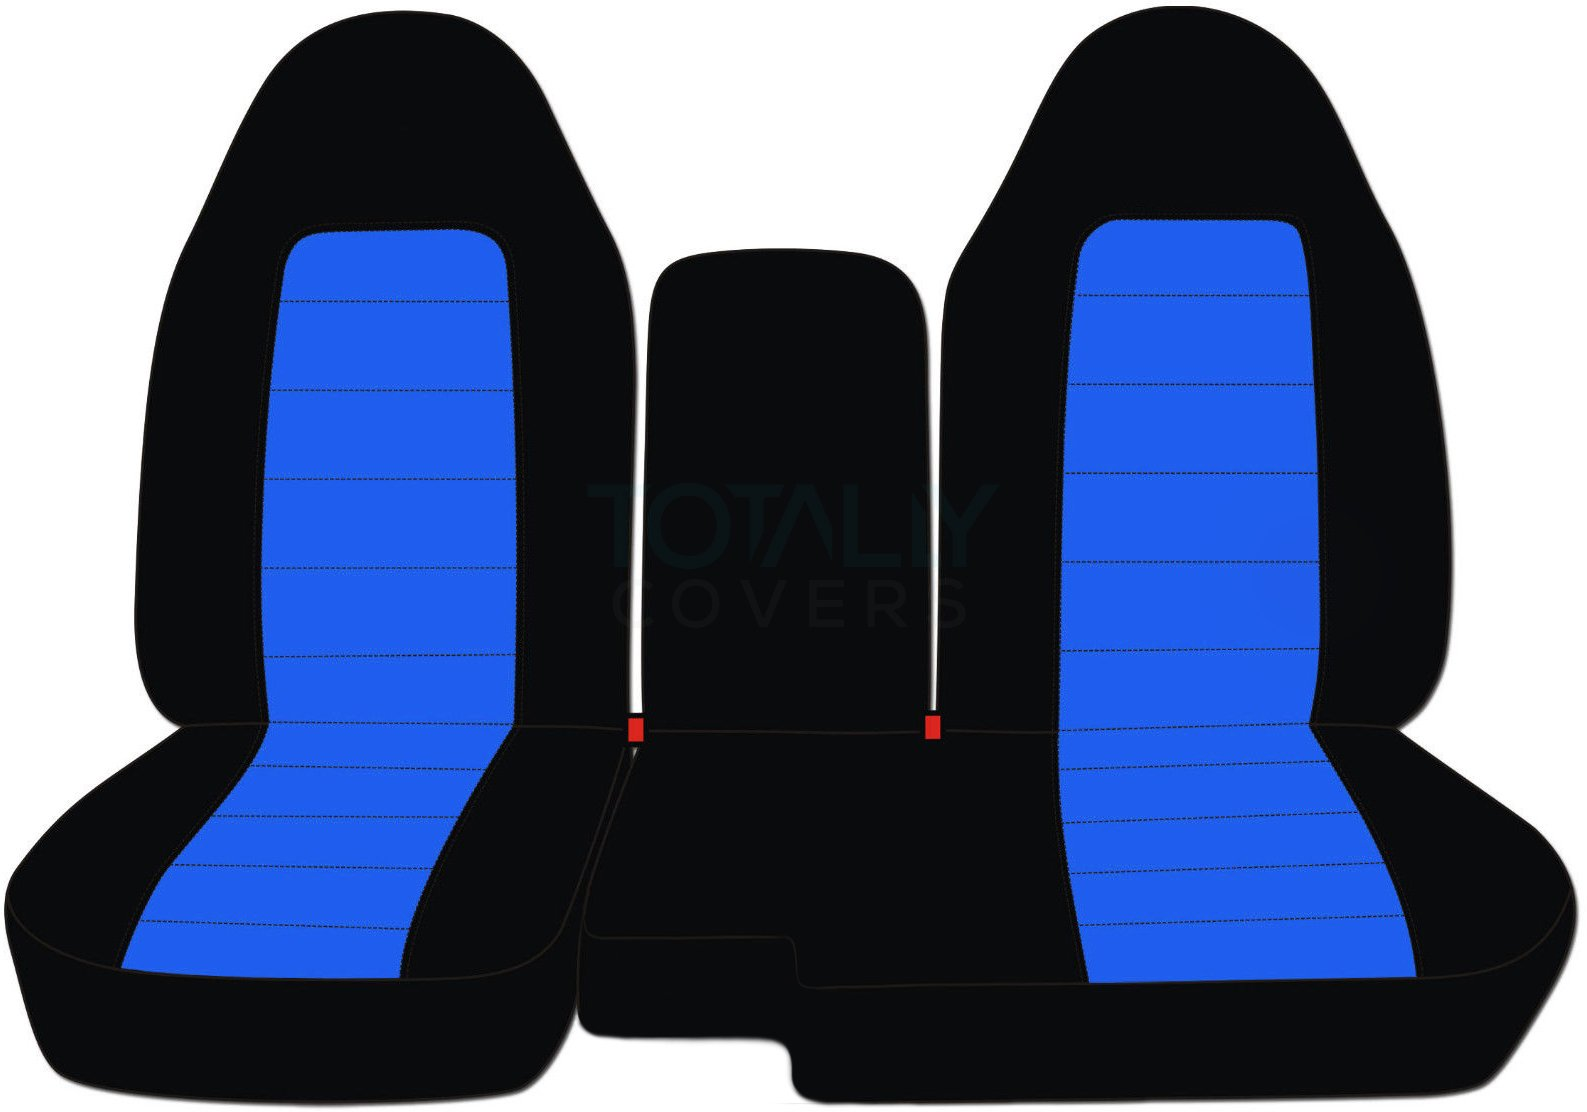 Totally Covers Fits 2004-2012 Ford Ranger/Mazda B-Series Two-Tone Truck Seat Covers (60/40 Split Bench) with Center Armrest/Console Cover: Black & Blue (21 Colors) 2005 2006 2007 2008 2009 2010 2011